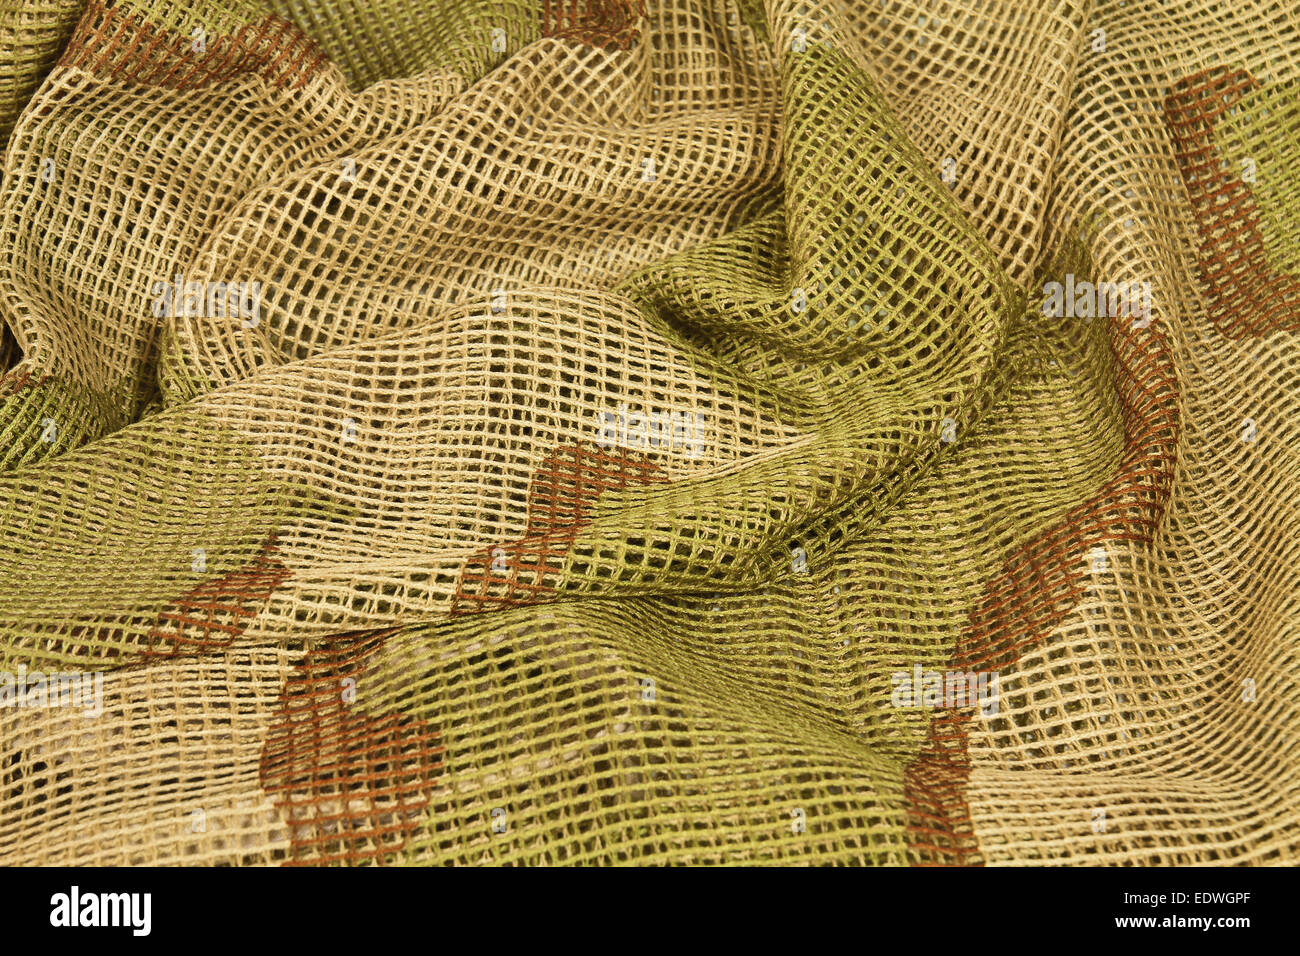 Cotton camouflage netting designed to wrap around the head